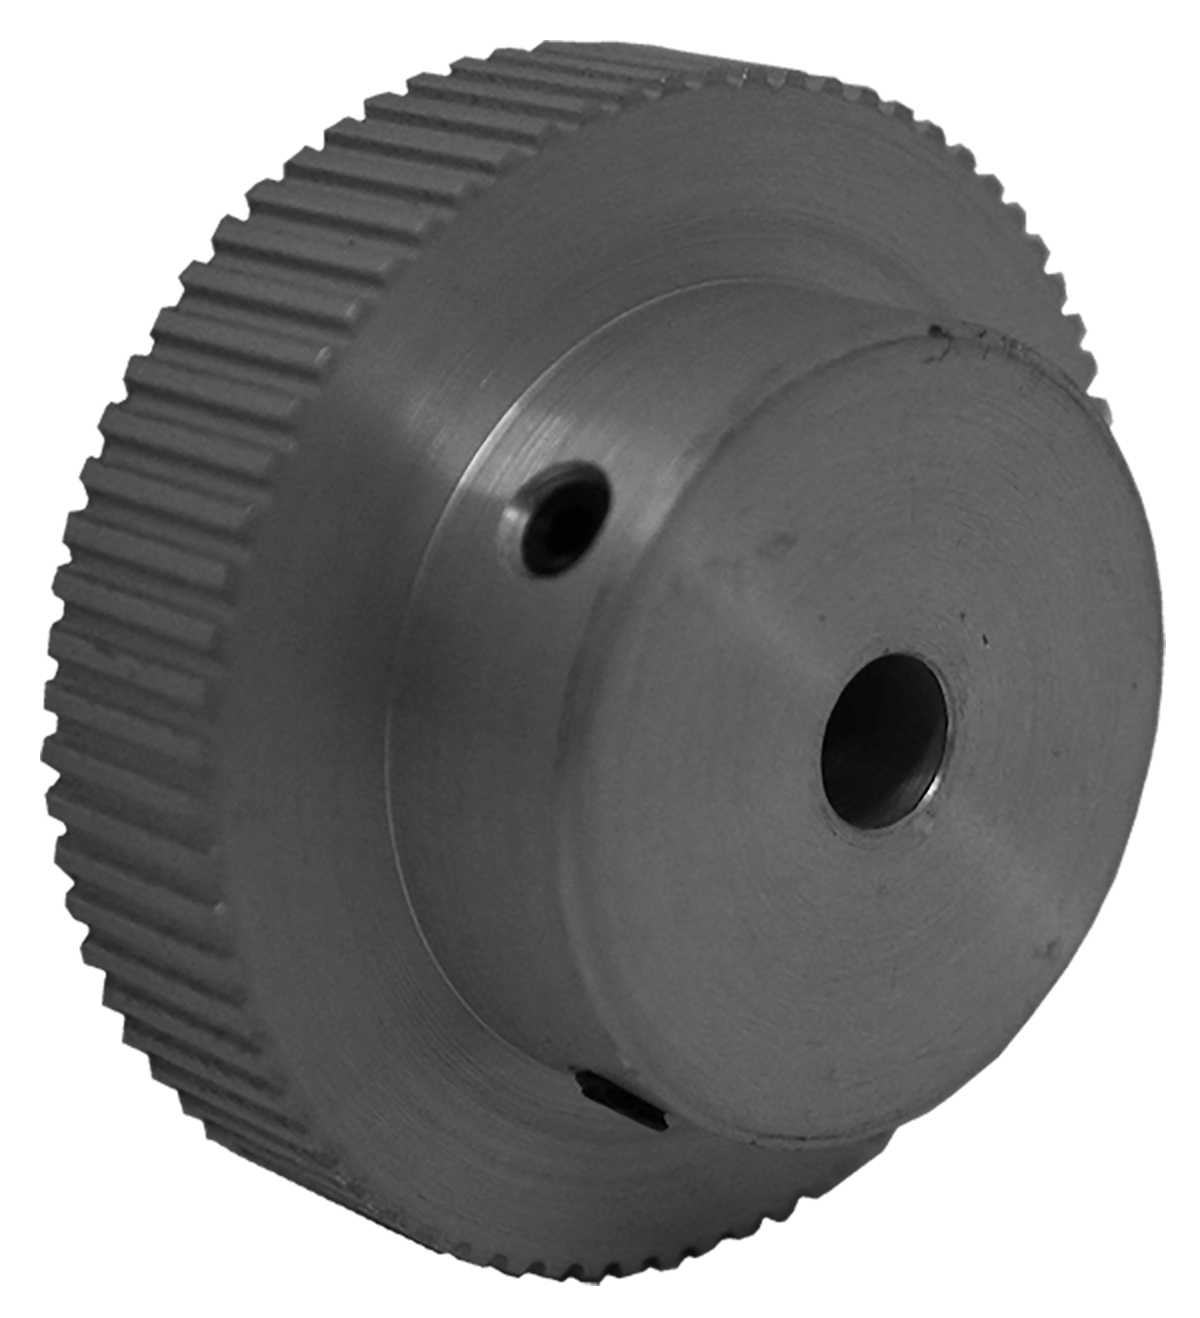 72MP025-6A3 - Aluminum Imperial Pitch Pulleys